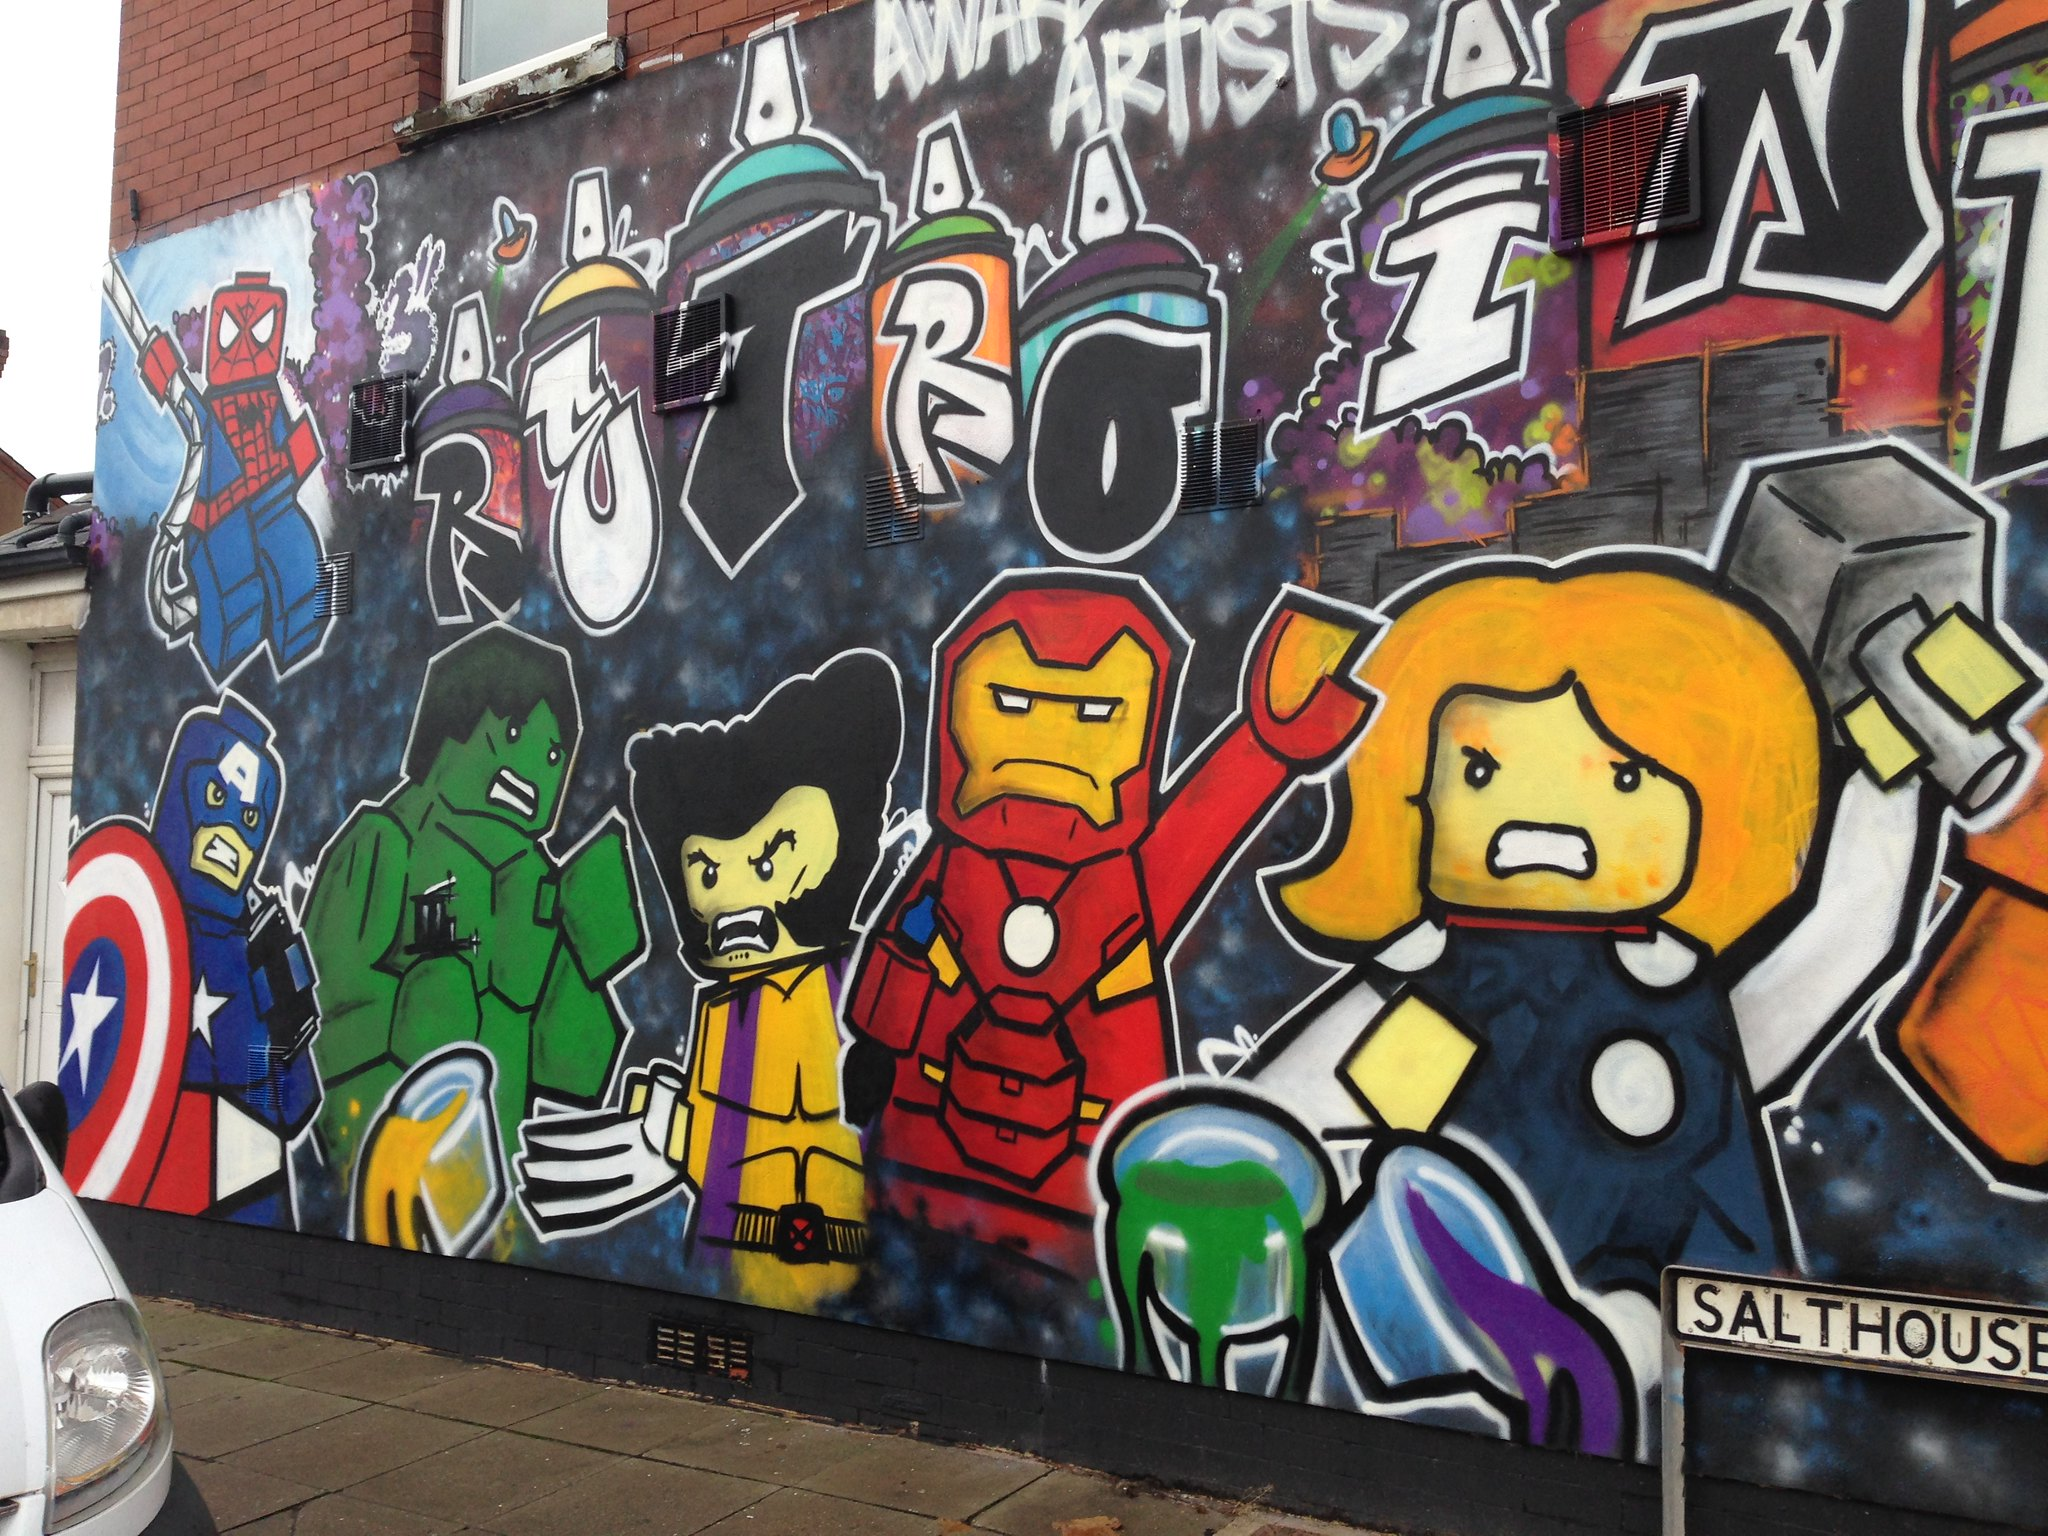 Marvel Lego street art, Blackpool, by Dominic Carlyle